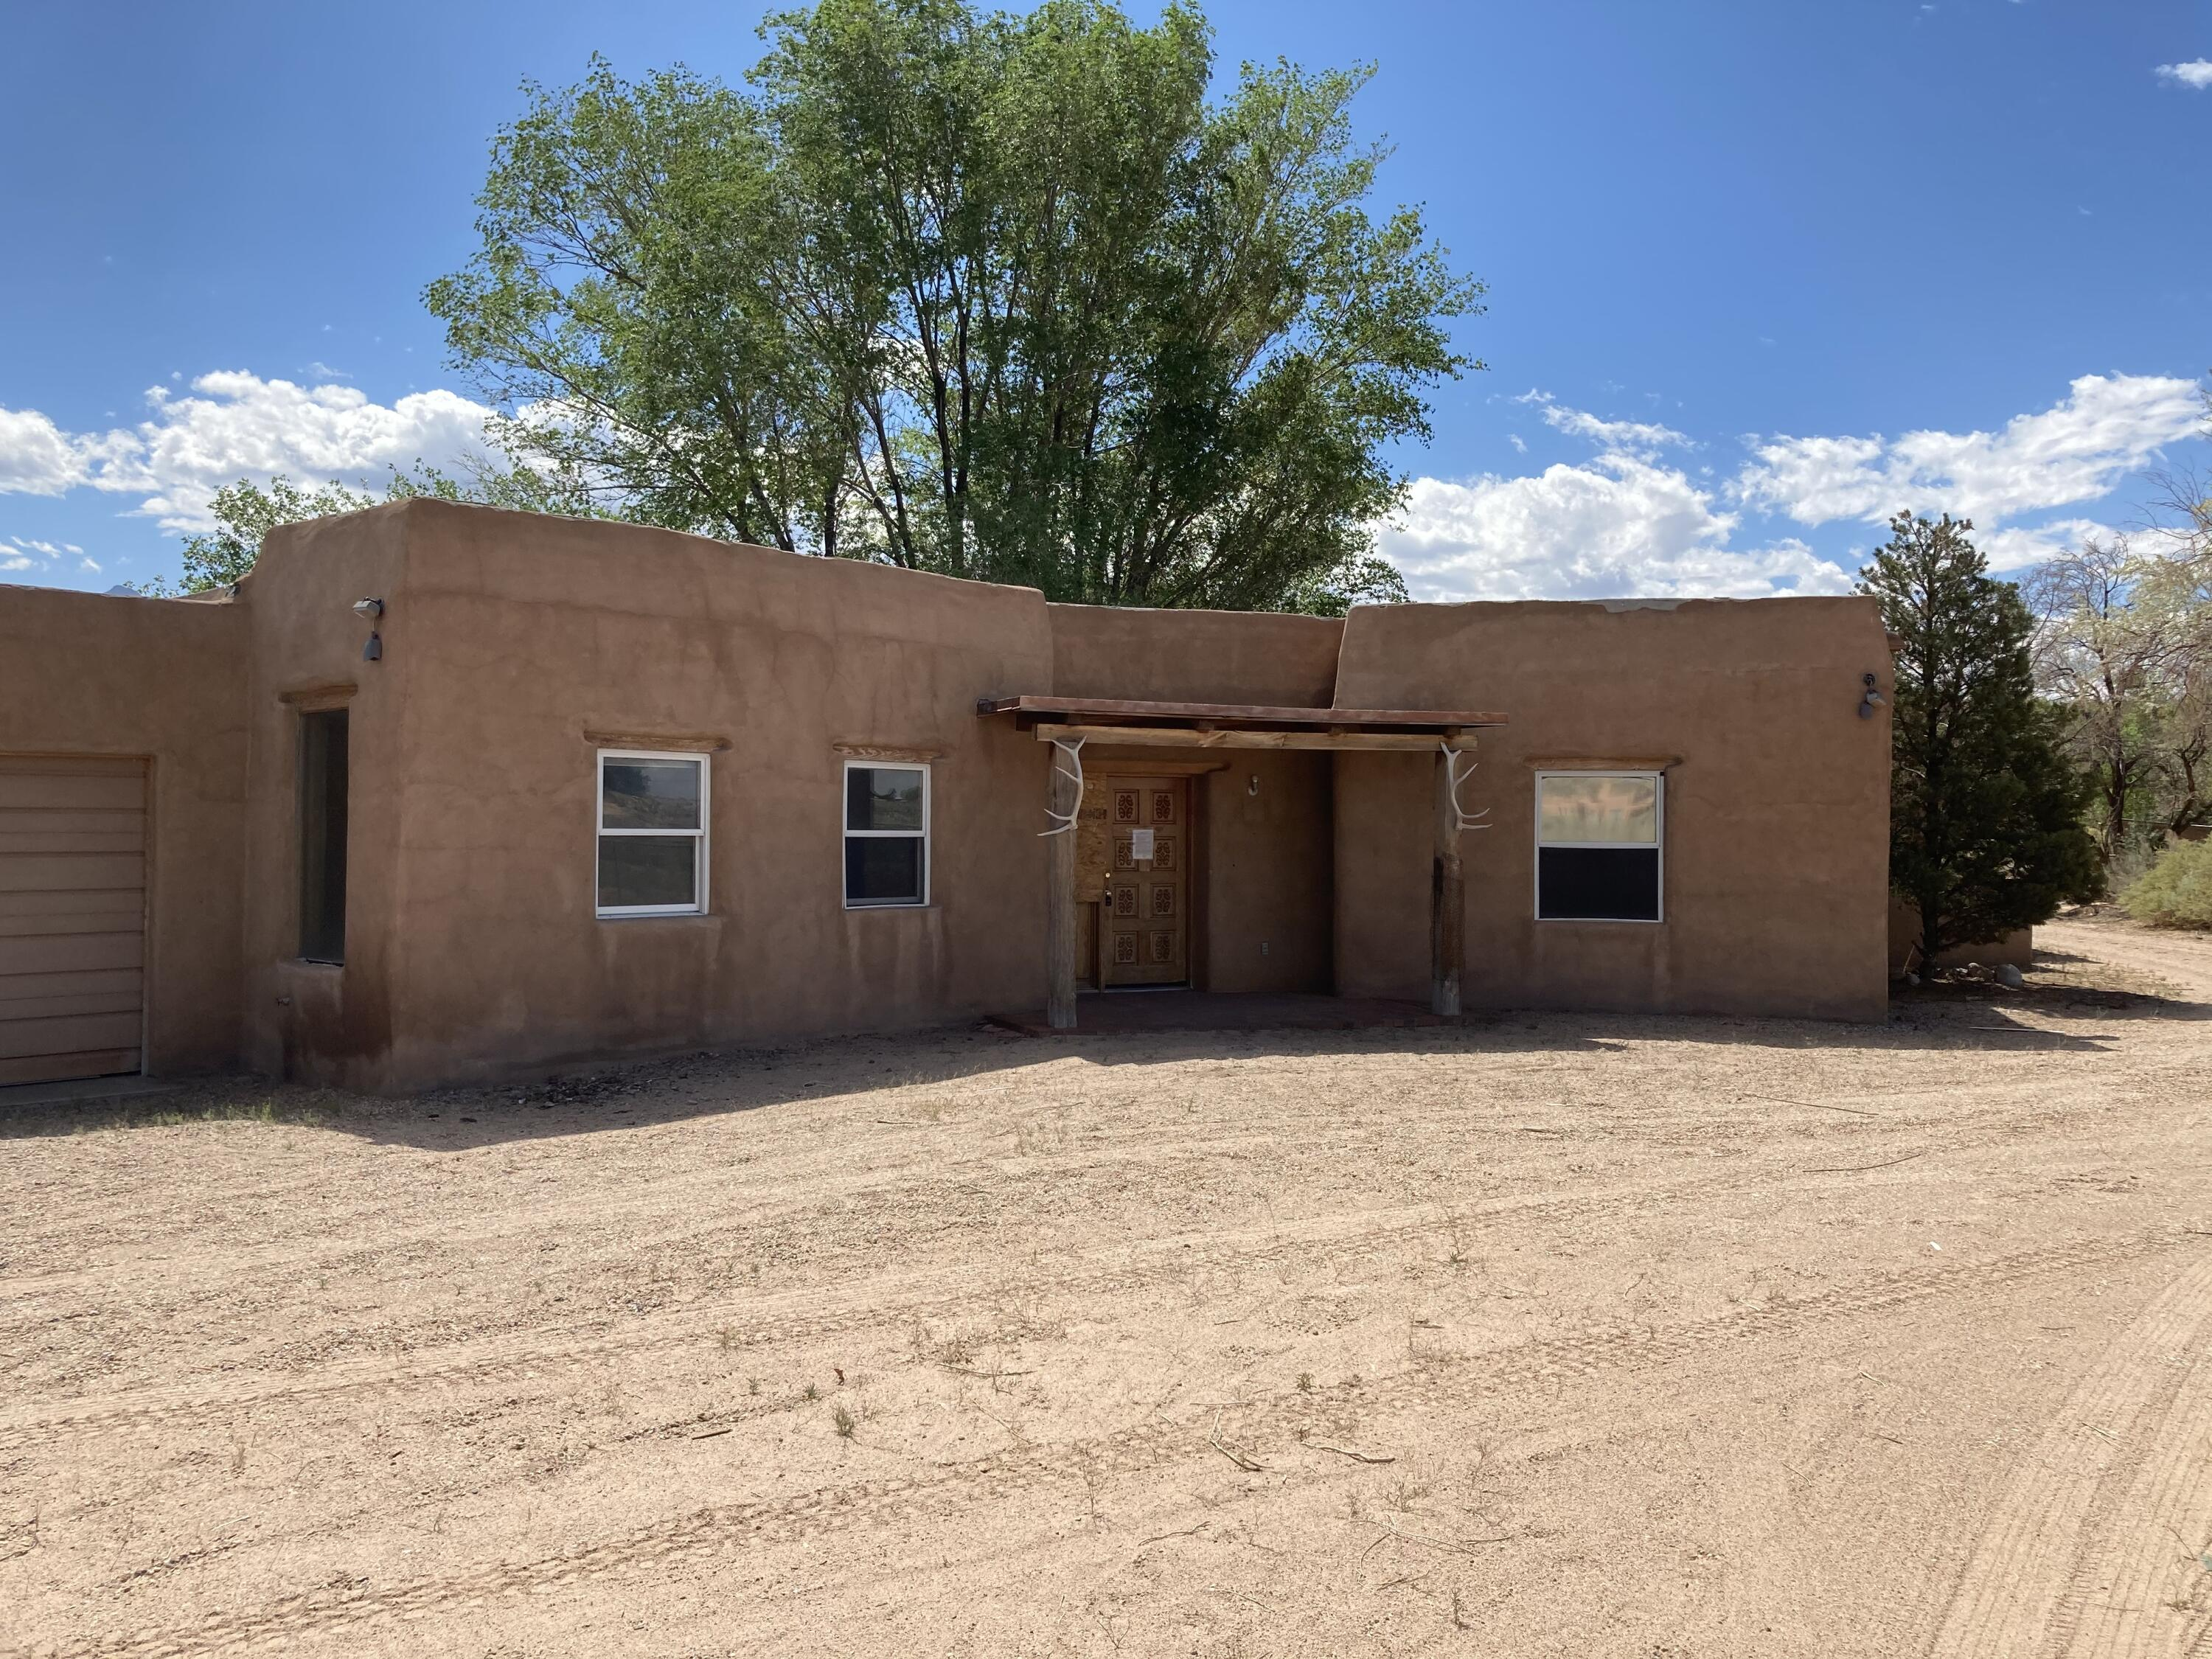 Beautiful custom home in Corrales. Needs TLC but has lots of potential! Kiva Fireplace, large fenced backyard with mountain views. Property will be sold as is.